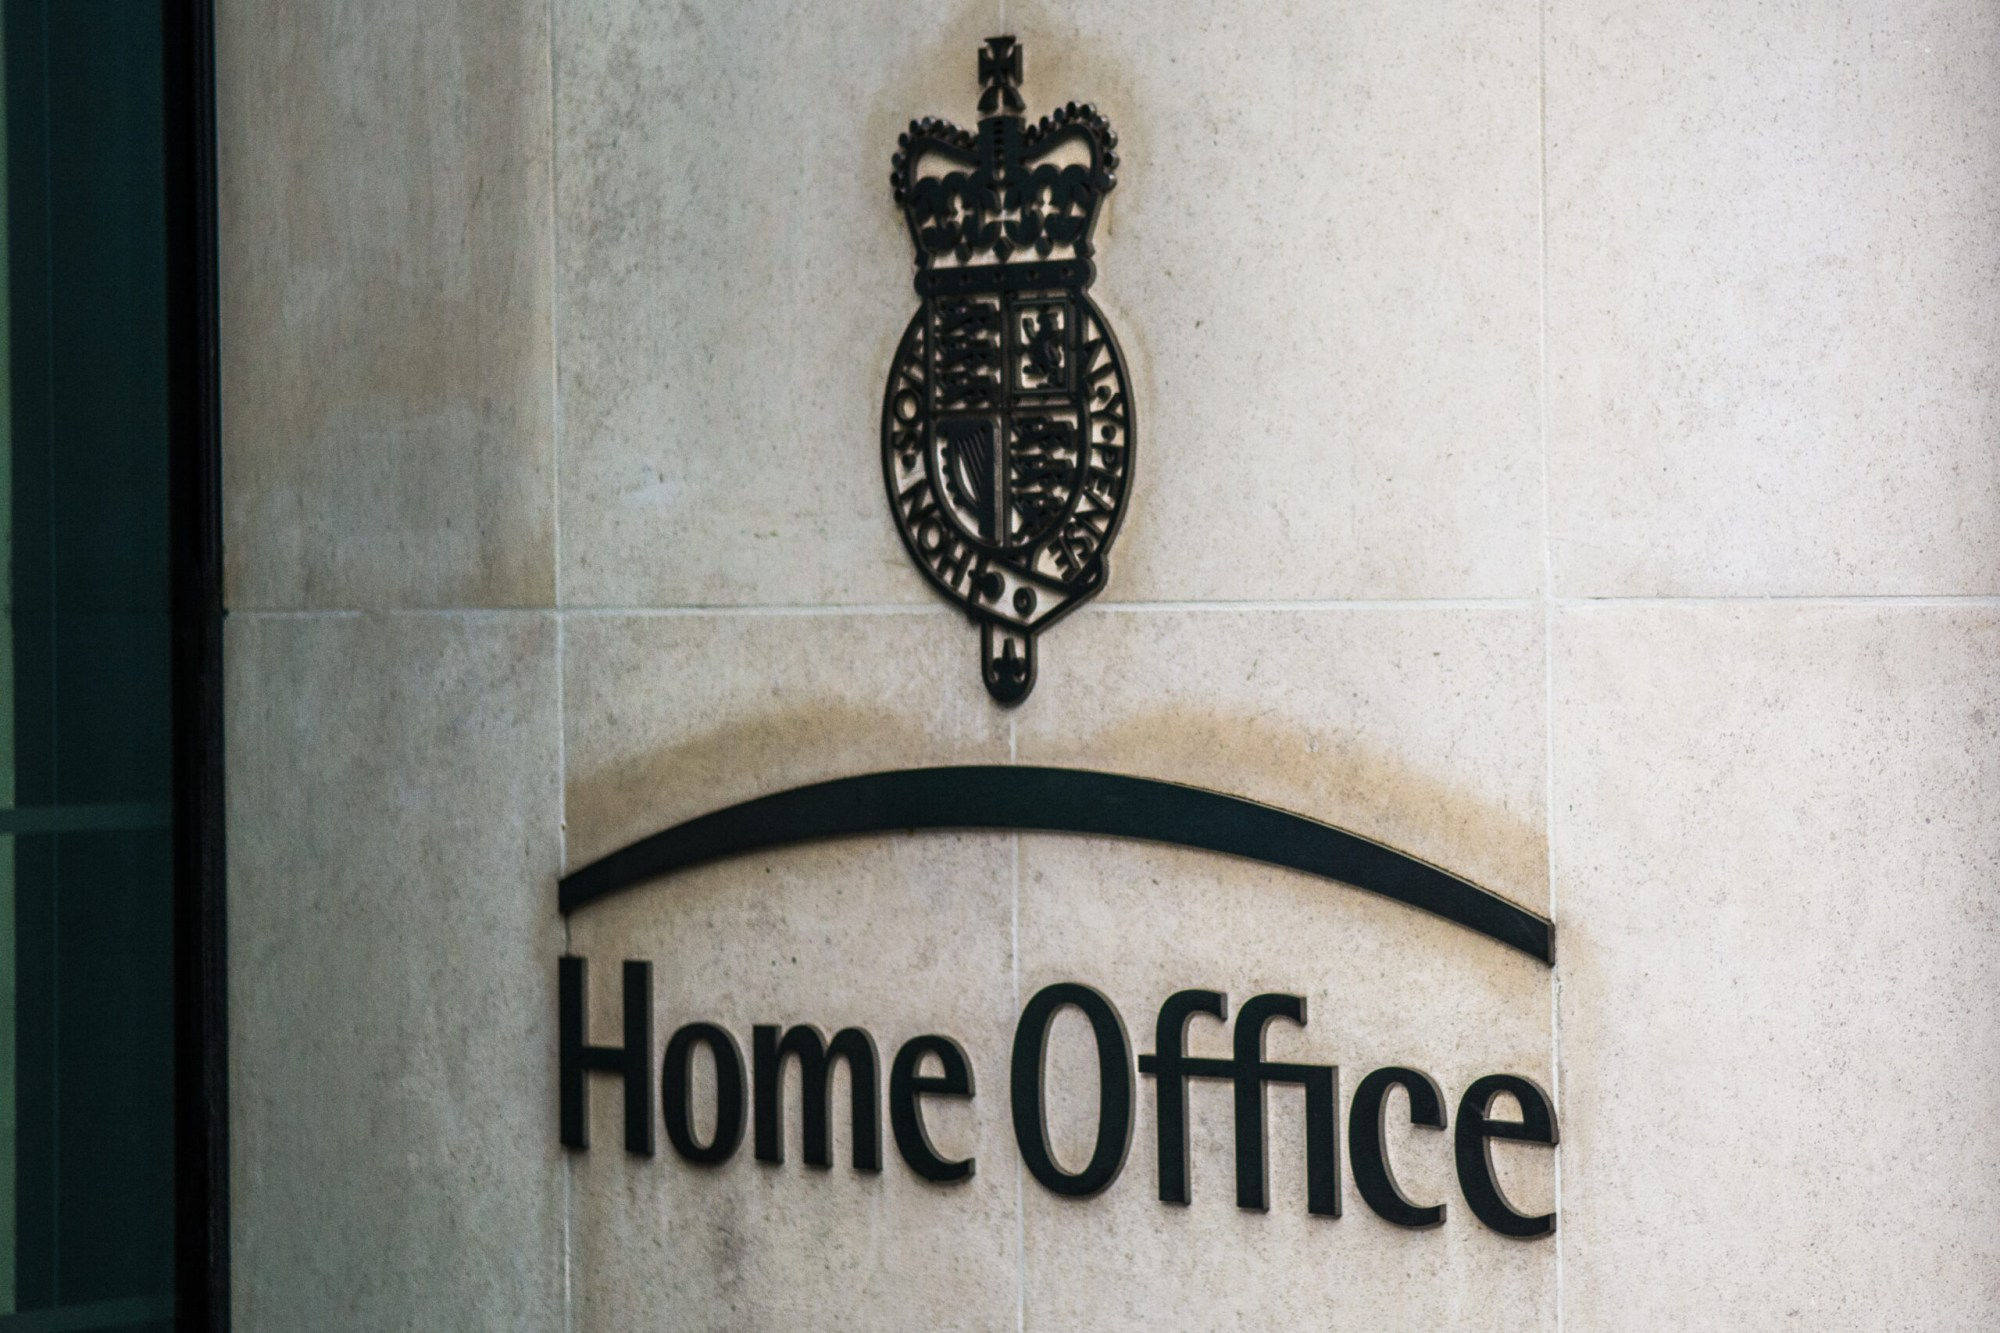 Patel's Policies for the Detention of Immigrants Found to be Unlawful